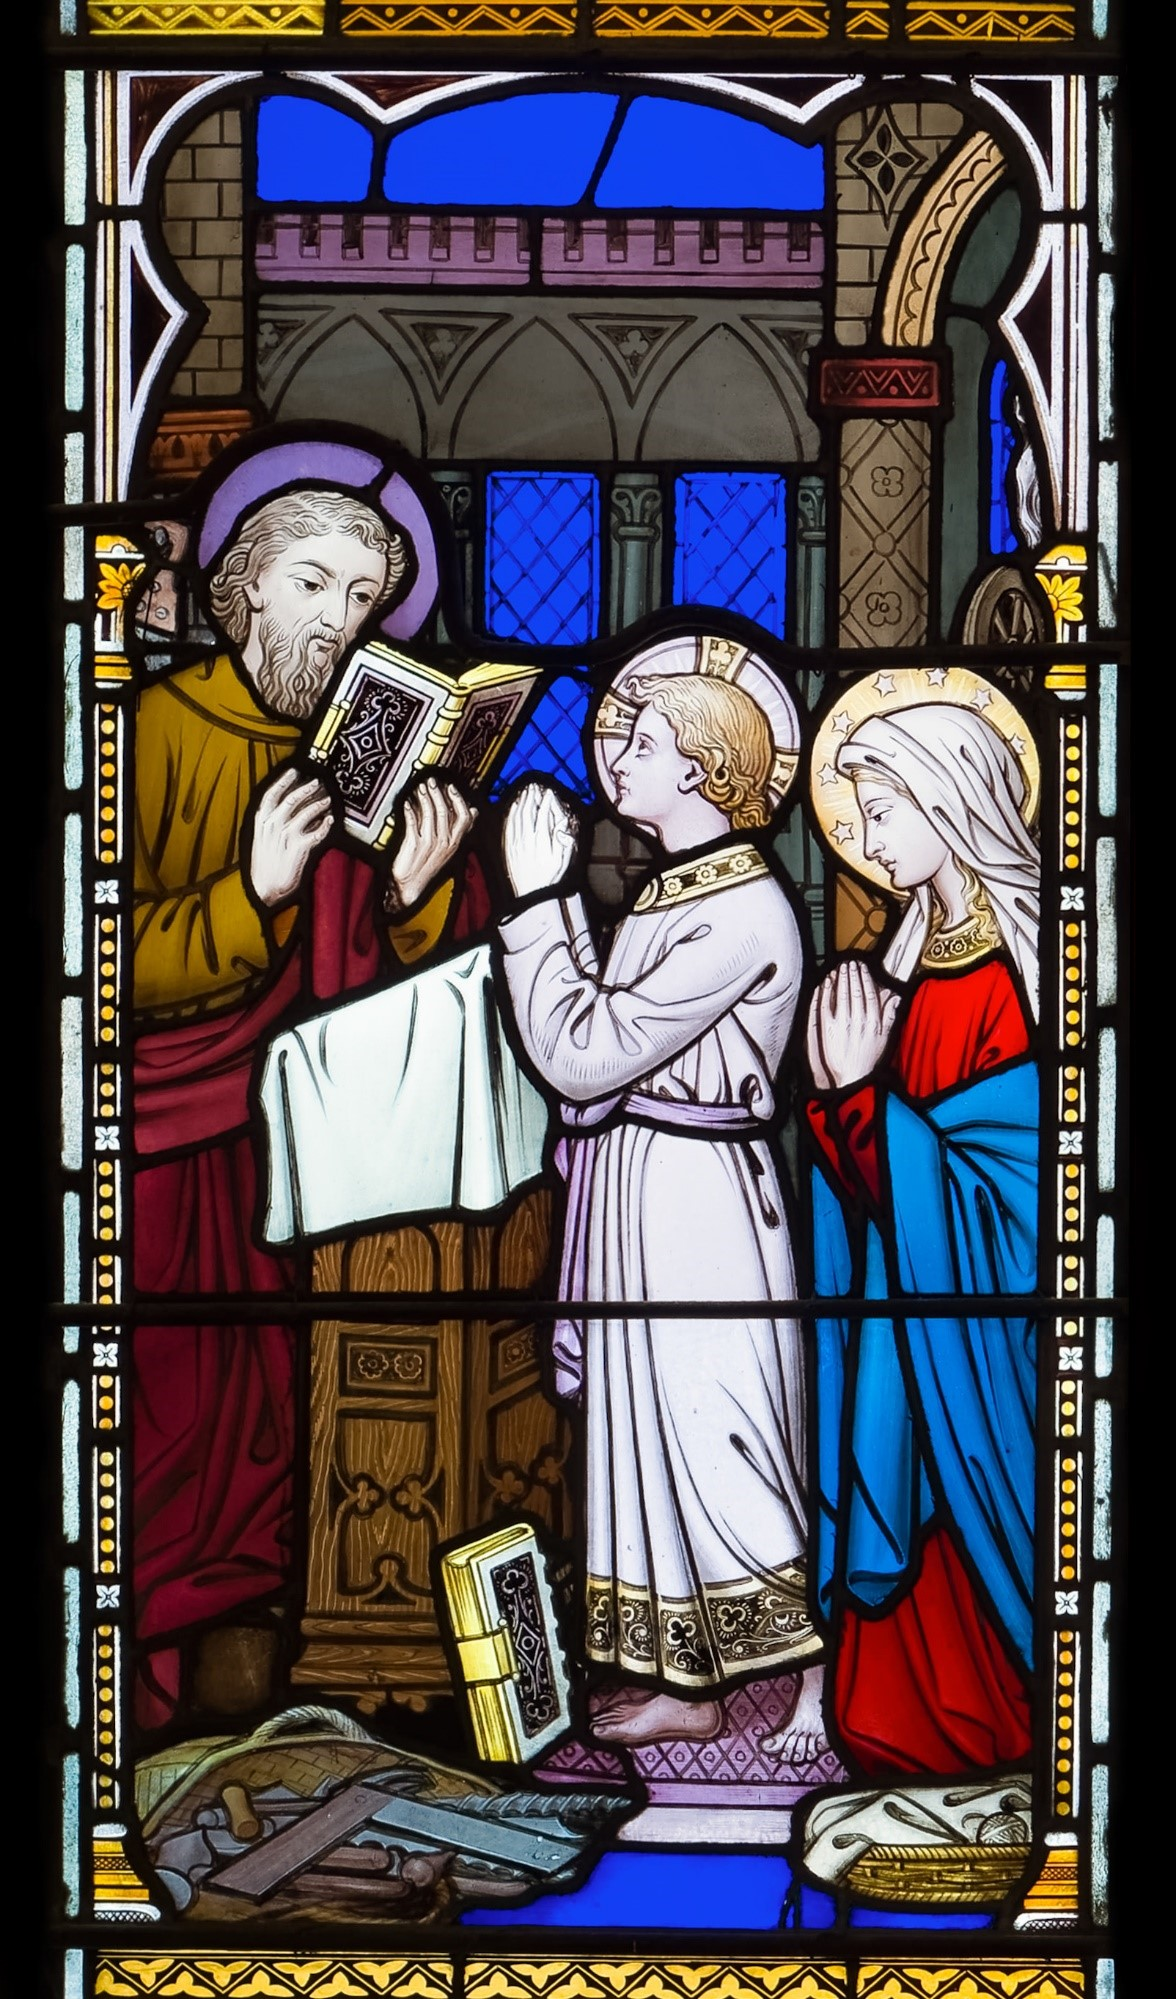 Photo credit for stained glass window: Kroeker Photo, Kingston, Ontario. Permission granted by the Rector of the Cathedral of the Blessed Virgin Mary of the Immaculate Conception, Kingston, Ontario.